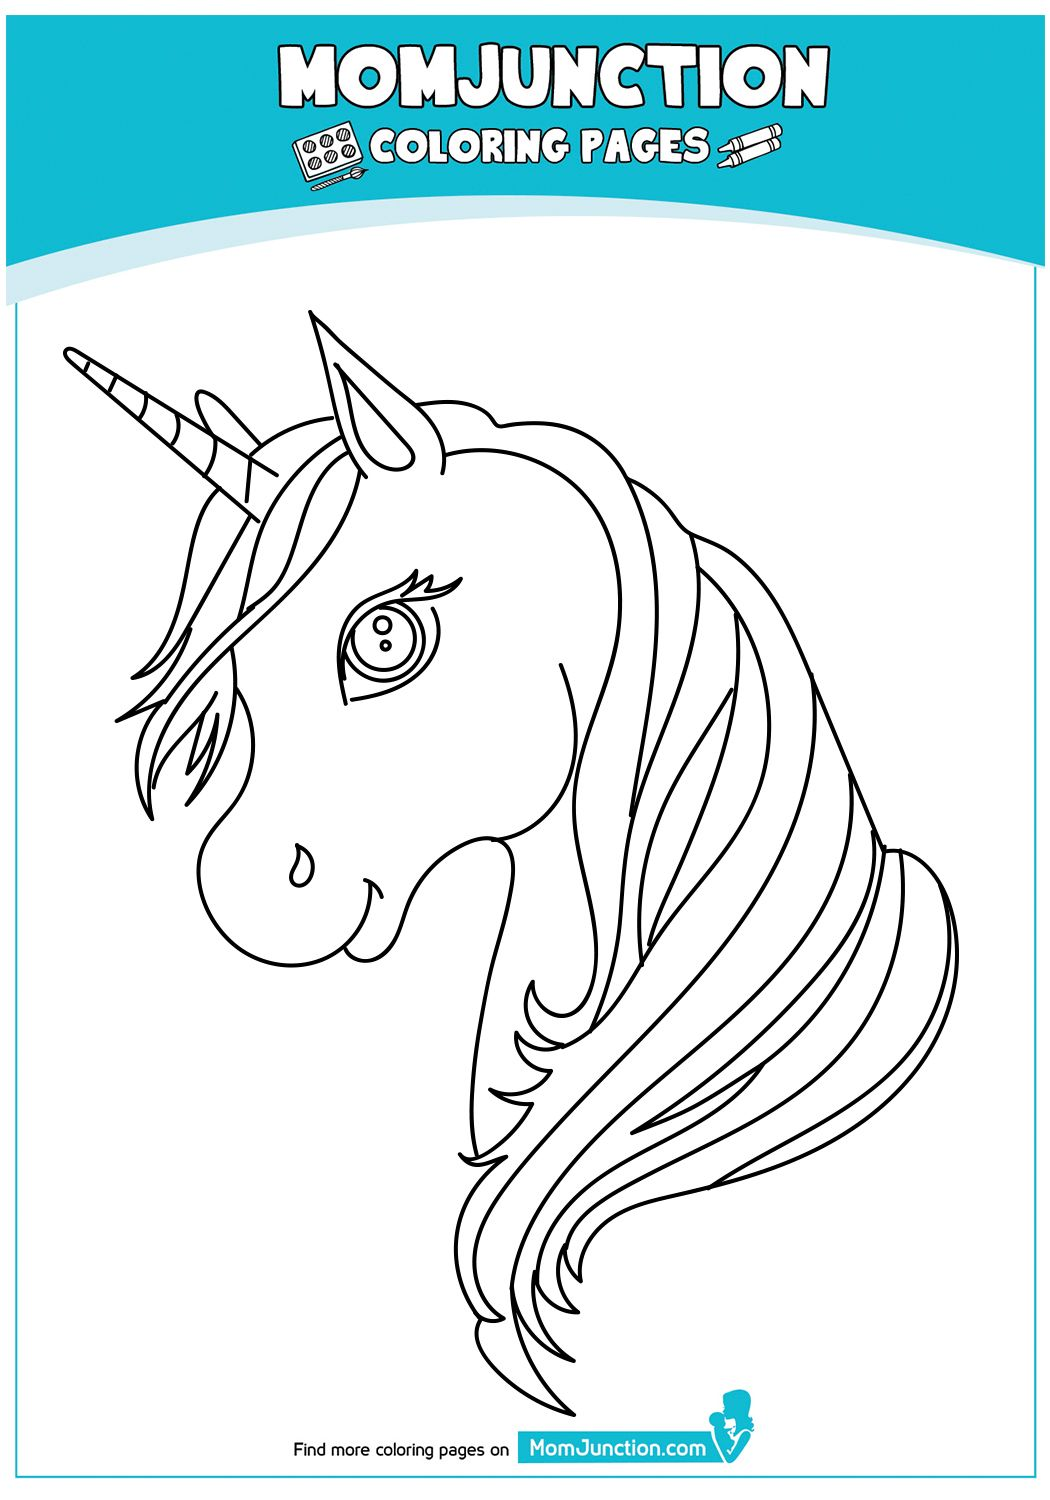 Print Coloring Image Momjunction Unicorn Coloring Pages Mom